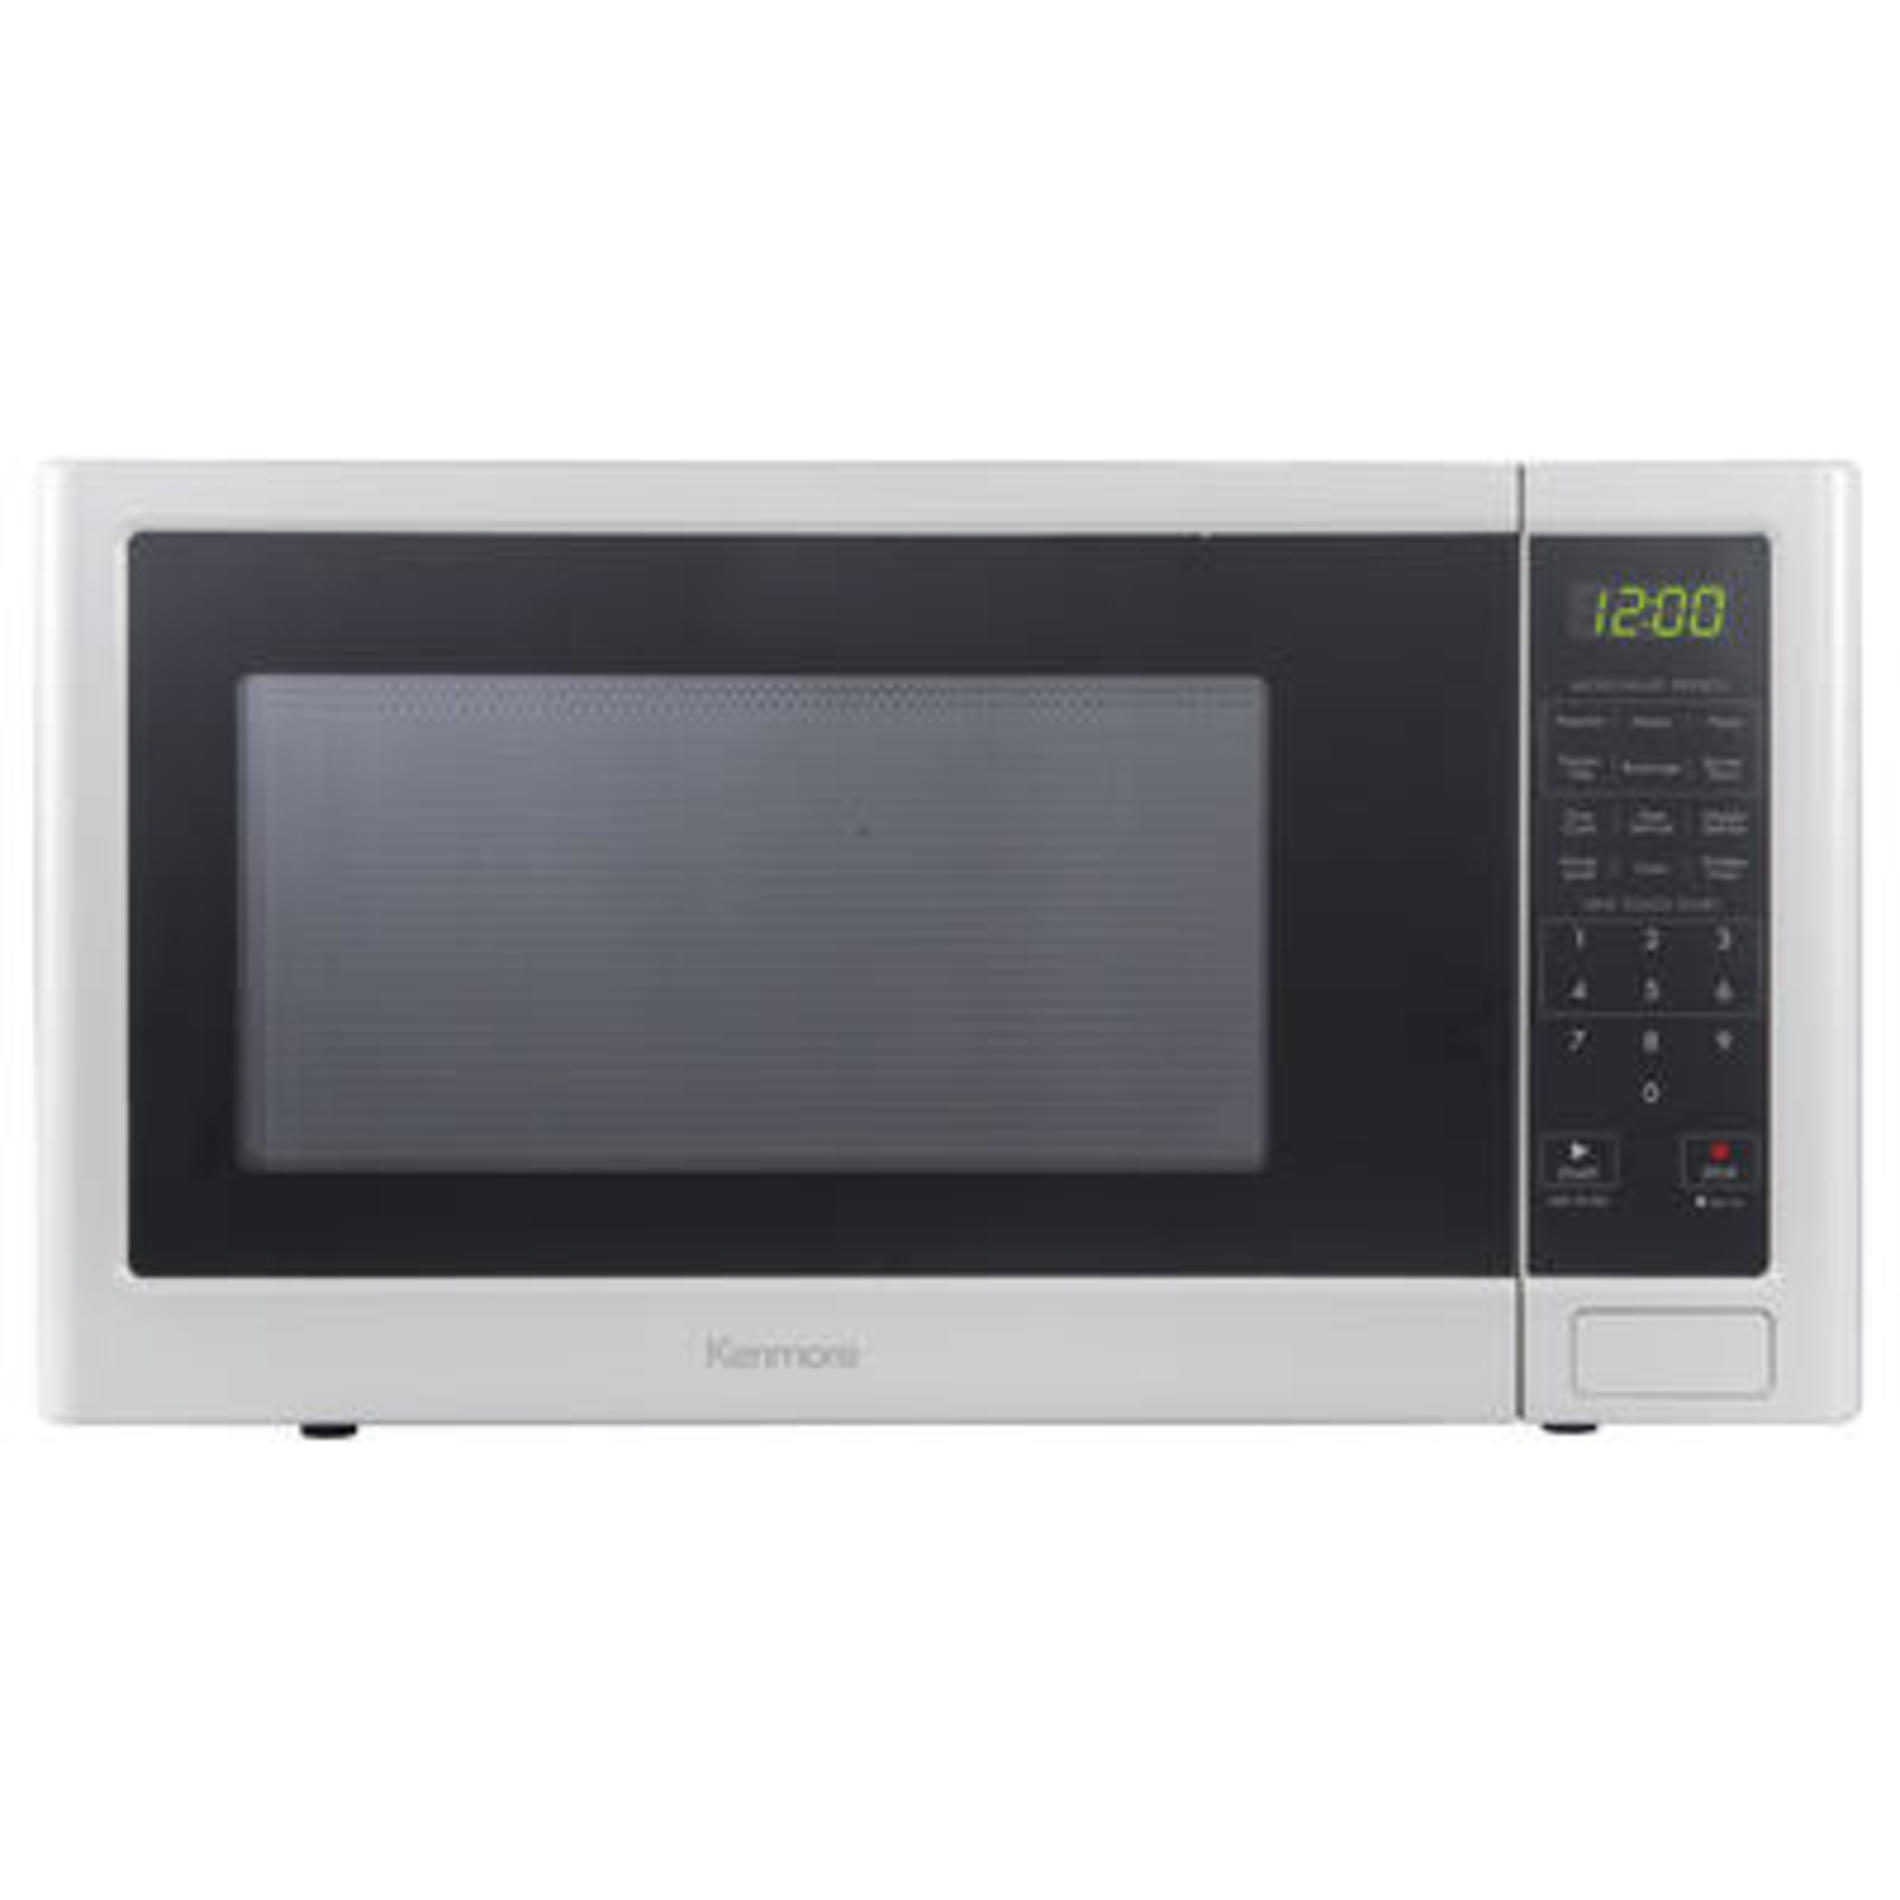 Kenmore P110n30ap-wjw 1.1 Cu. Ft. Microwave Oven - White